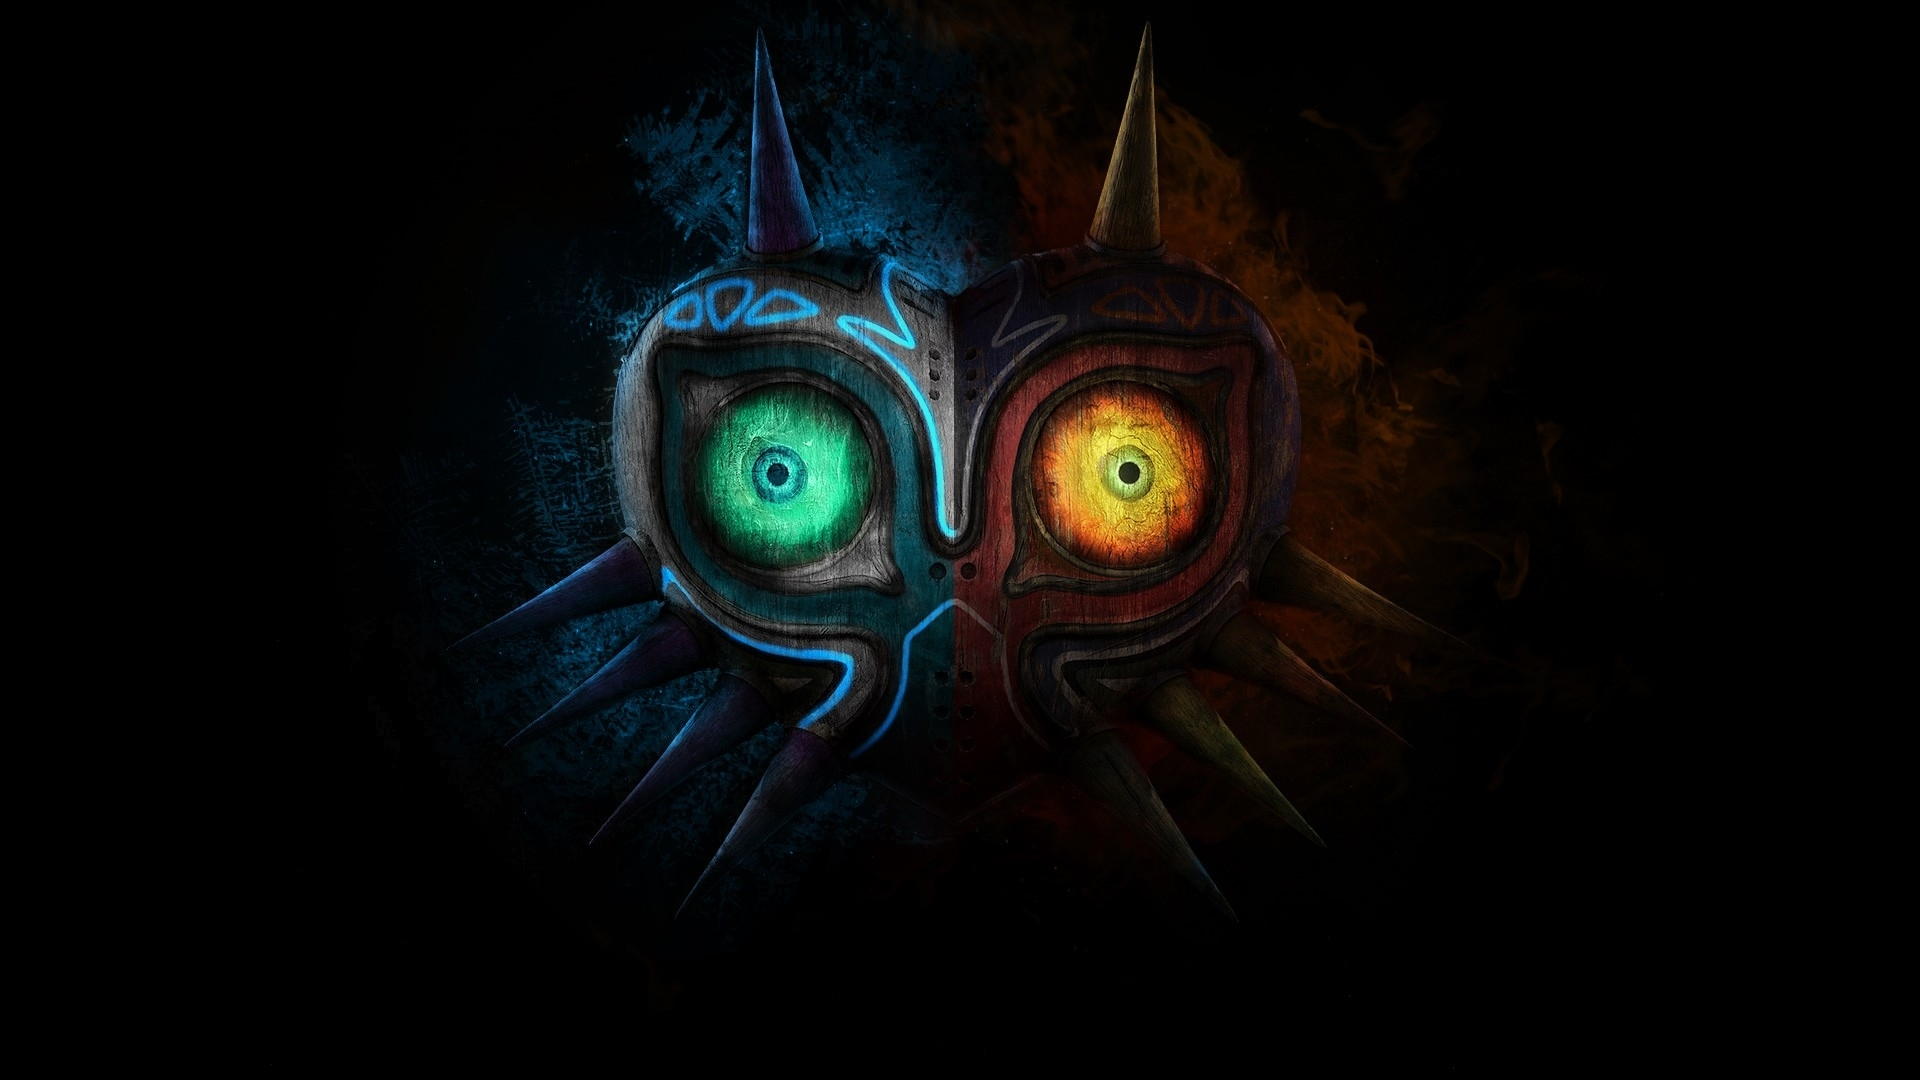 76 the legend of zelda: majora's mask fonds d'écran hd | arrière